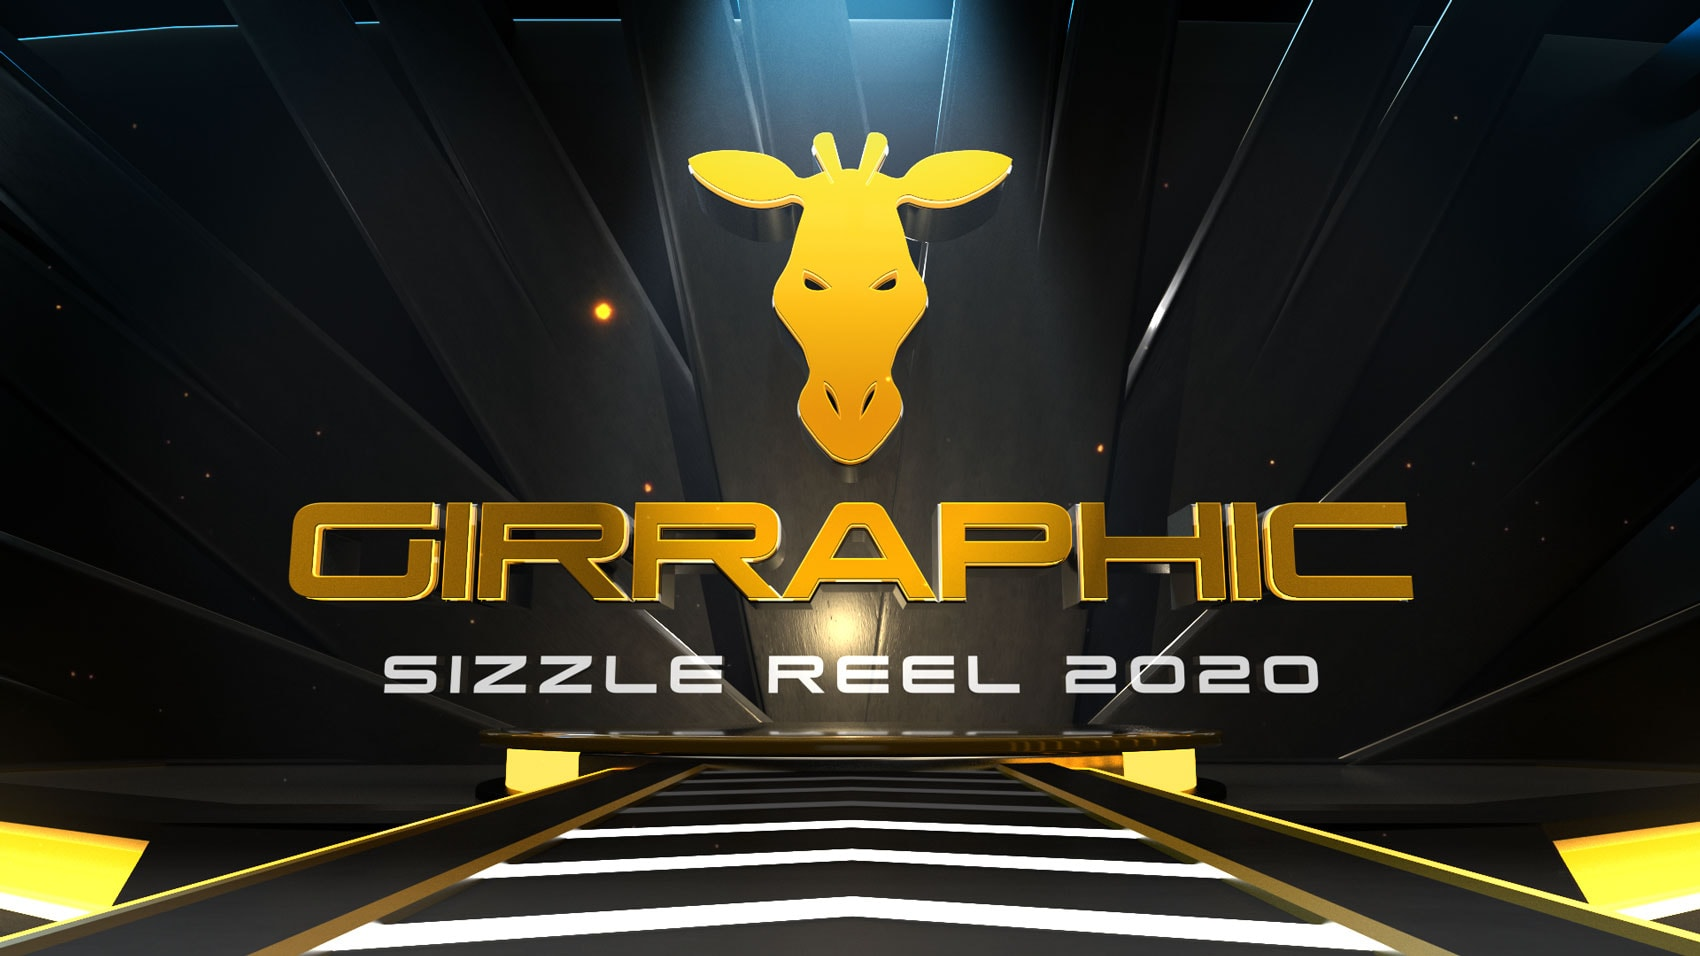 Girraphic Sizzle Reel 2020 Cover